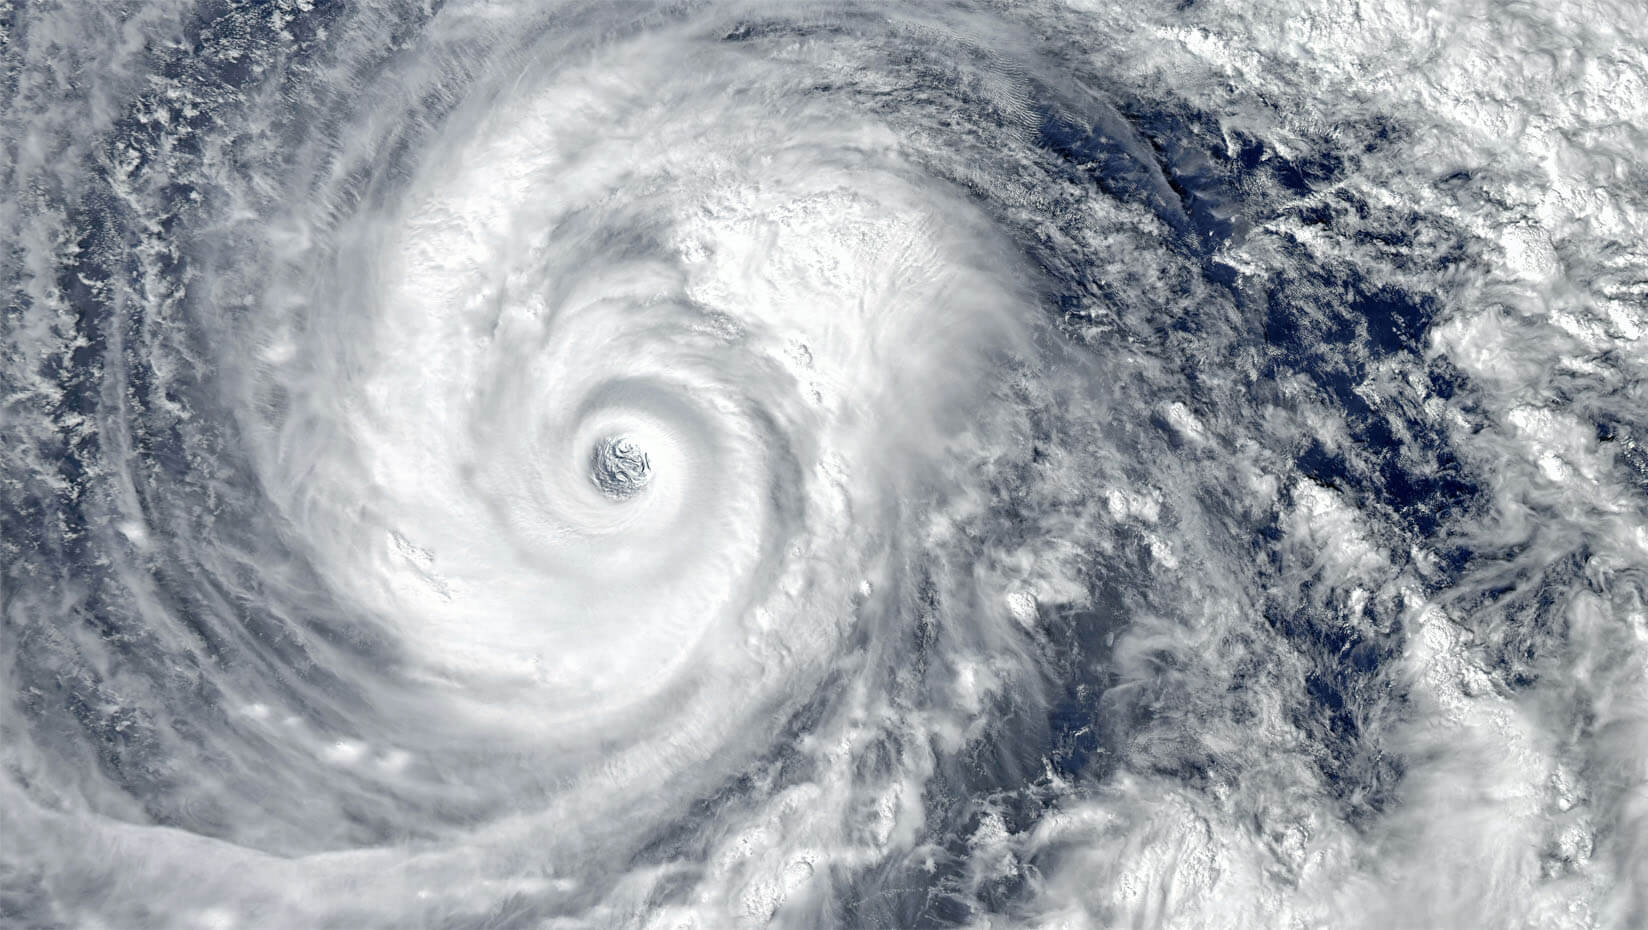 The eye of a hurricane as seen from space